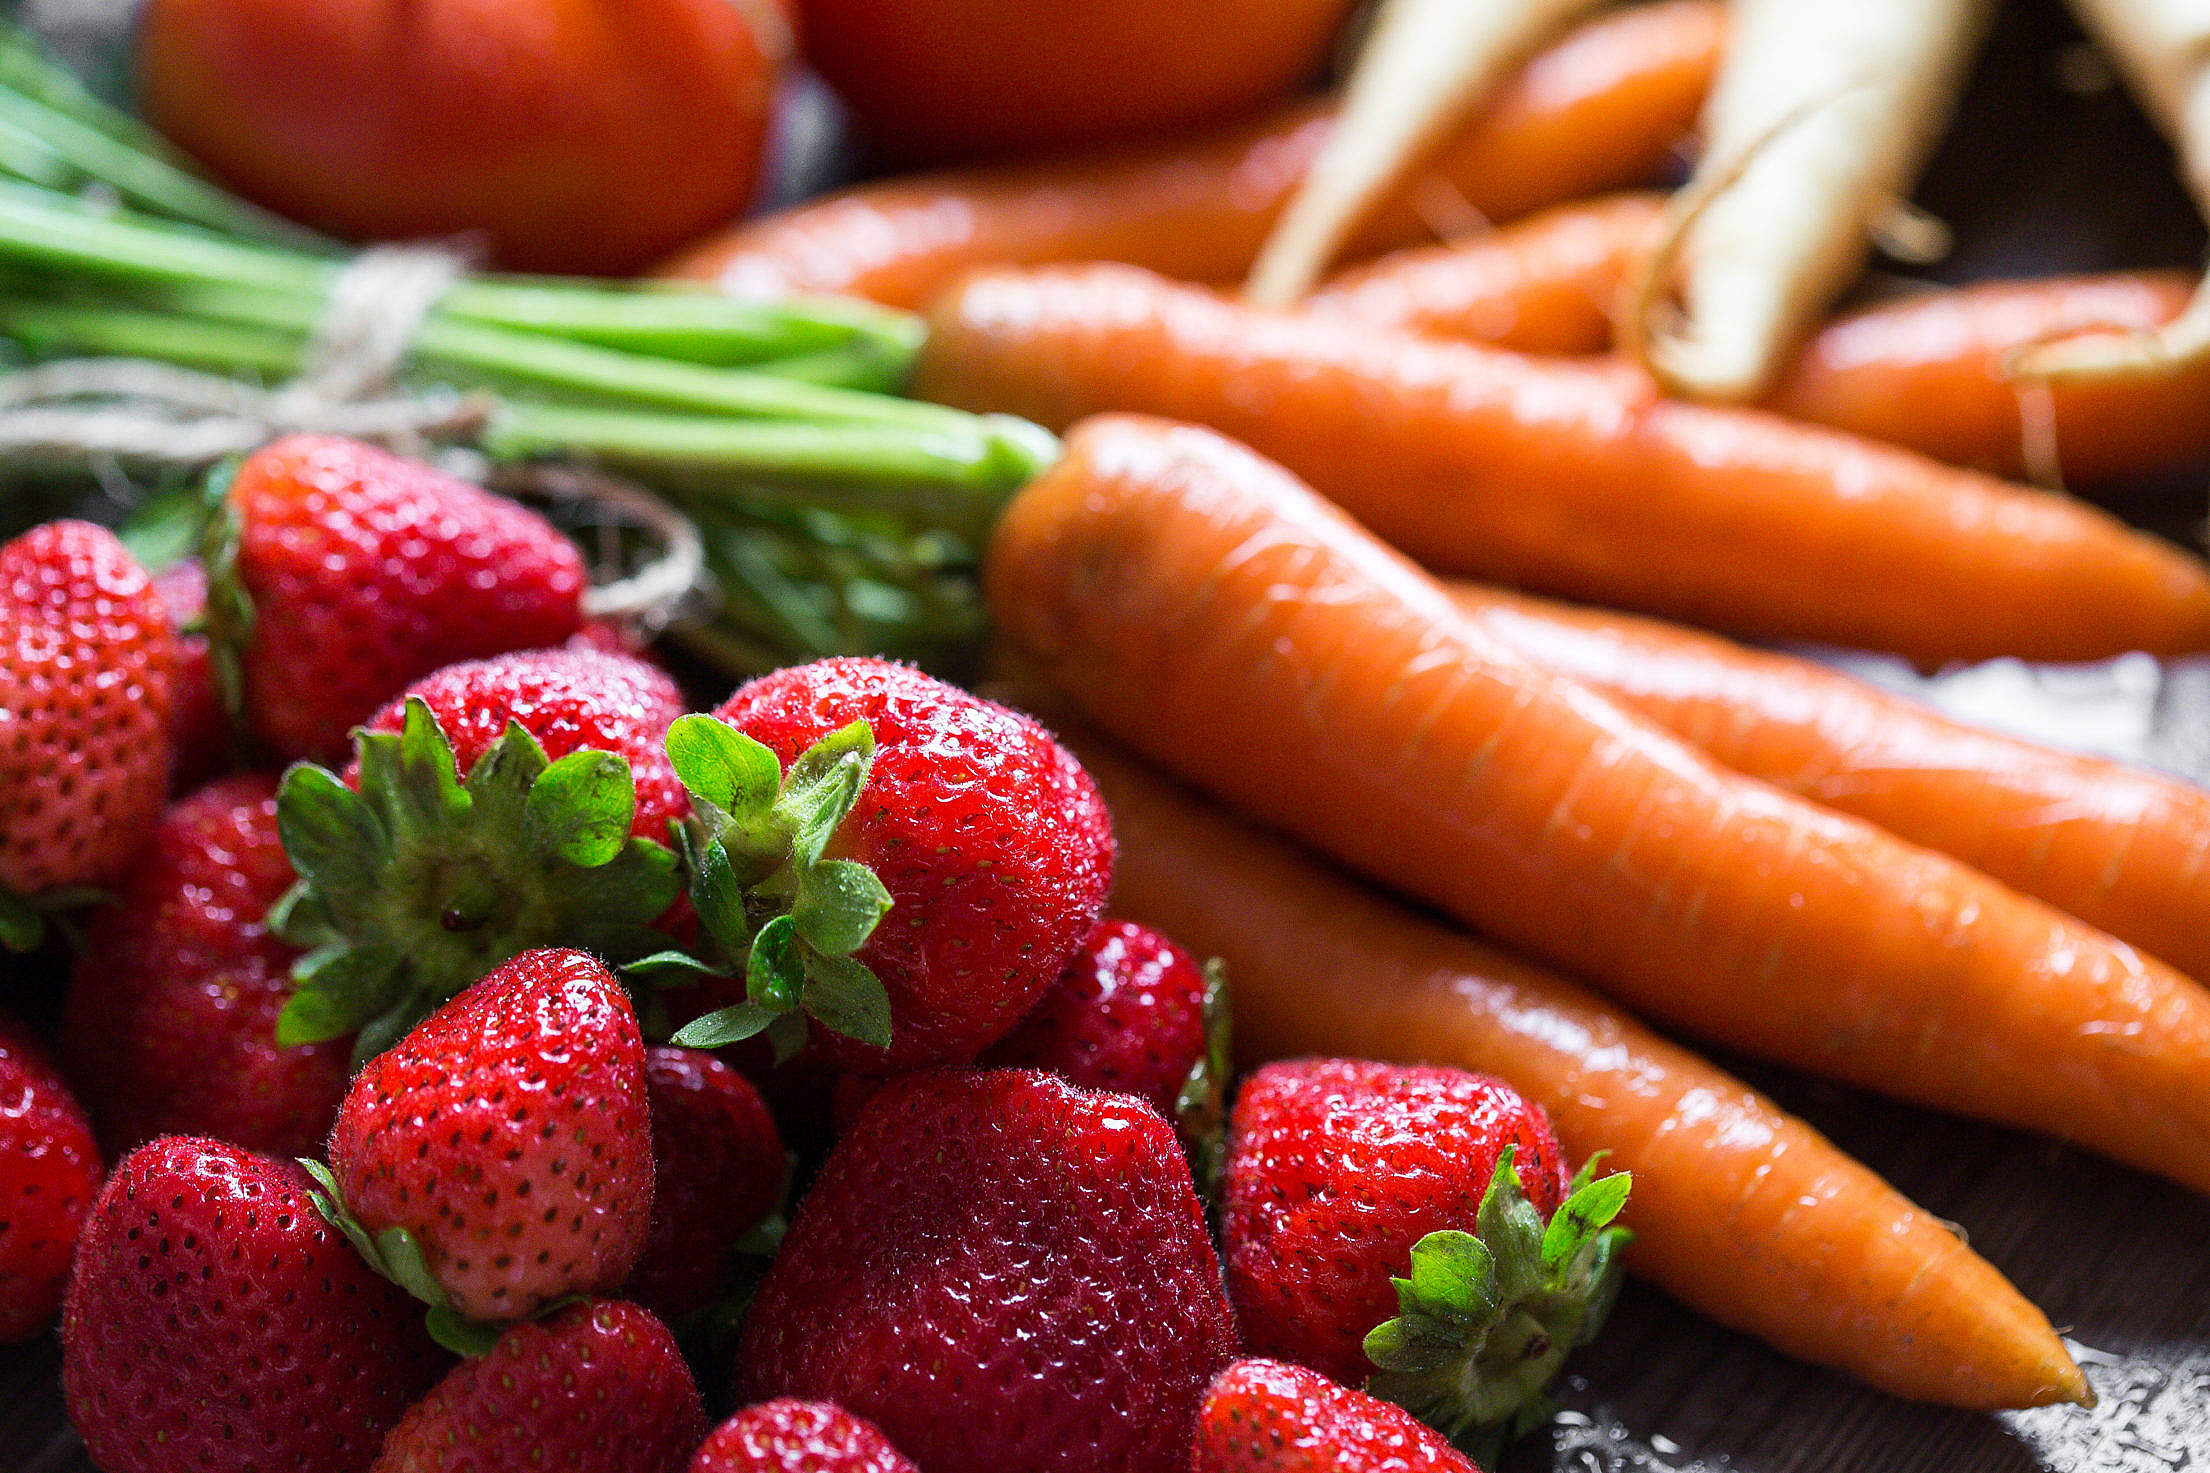 Preparing Fresh Breakfast: Strawberries & Carrots Free Stock Photo